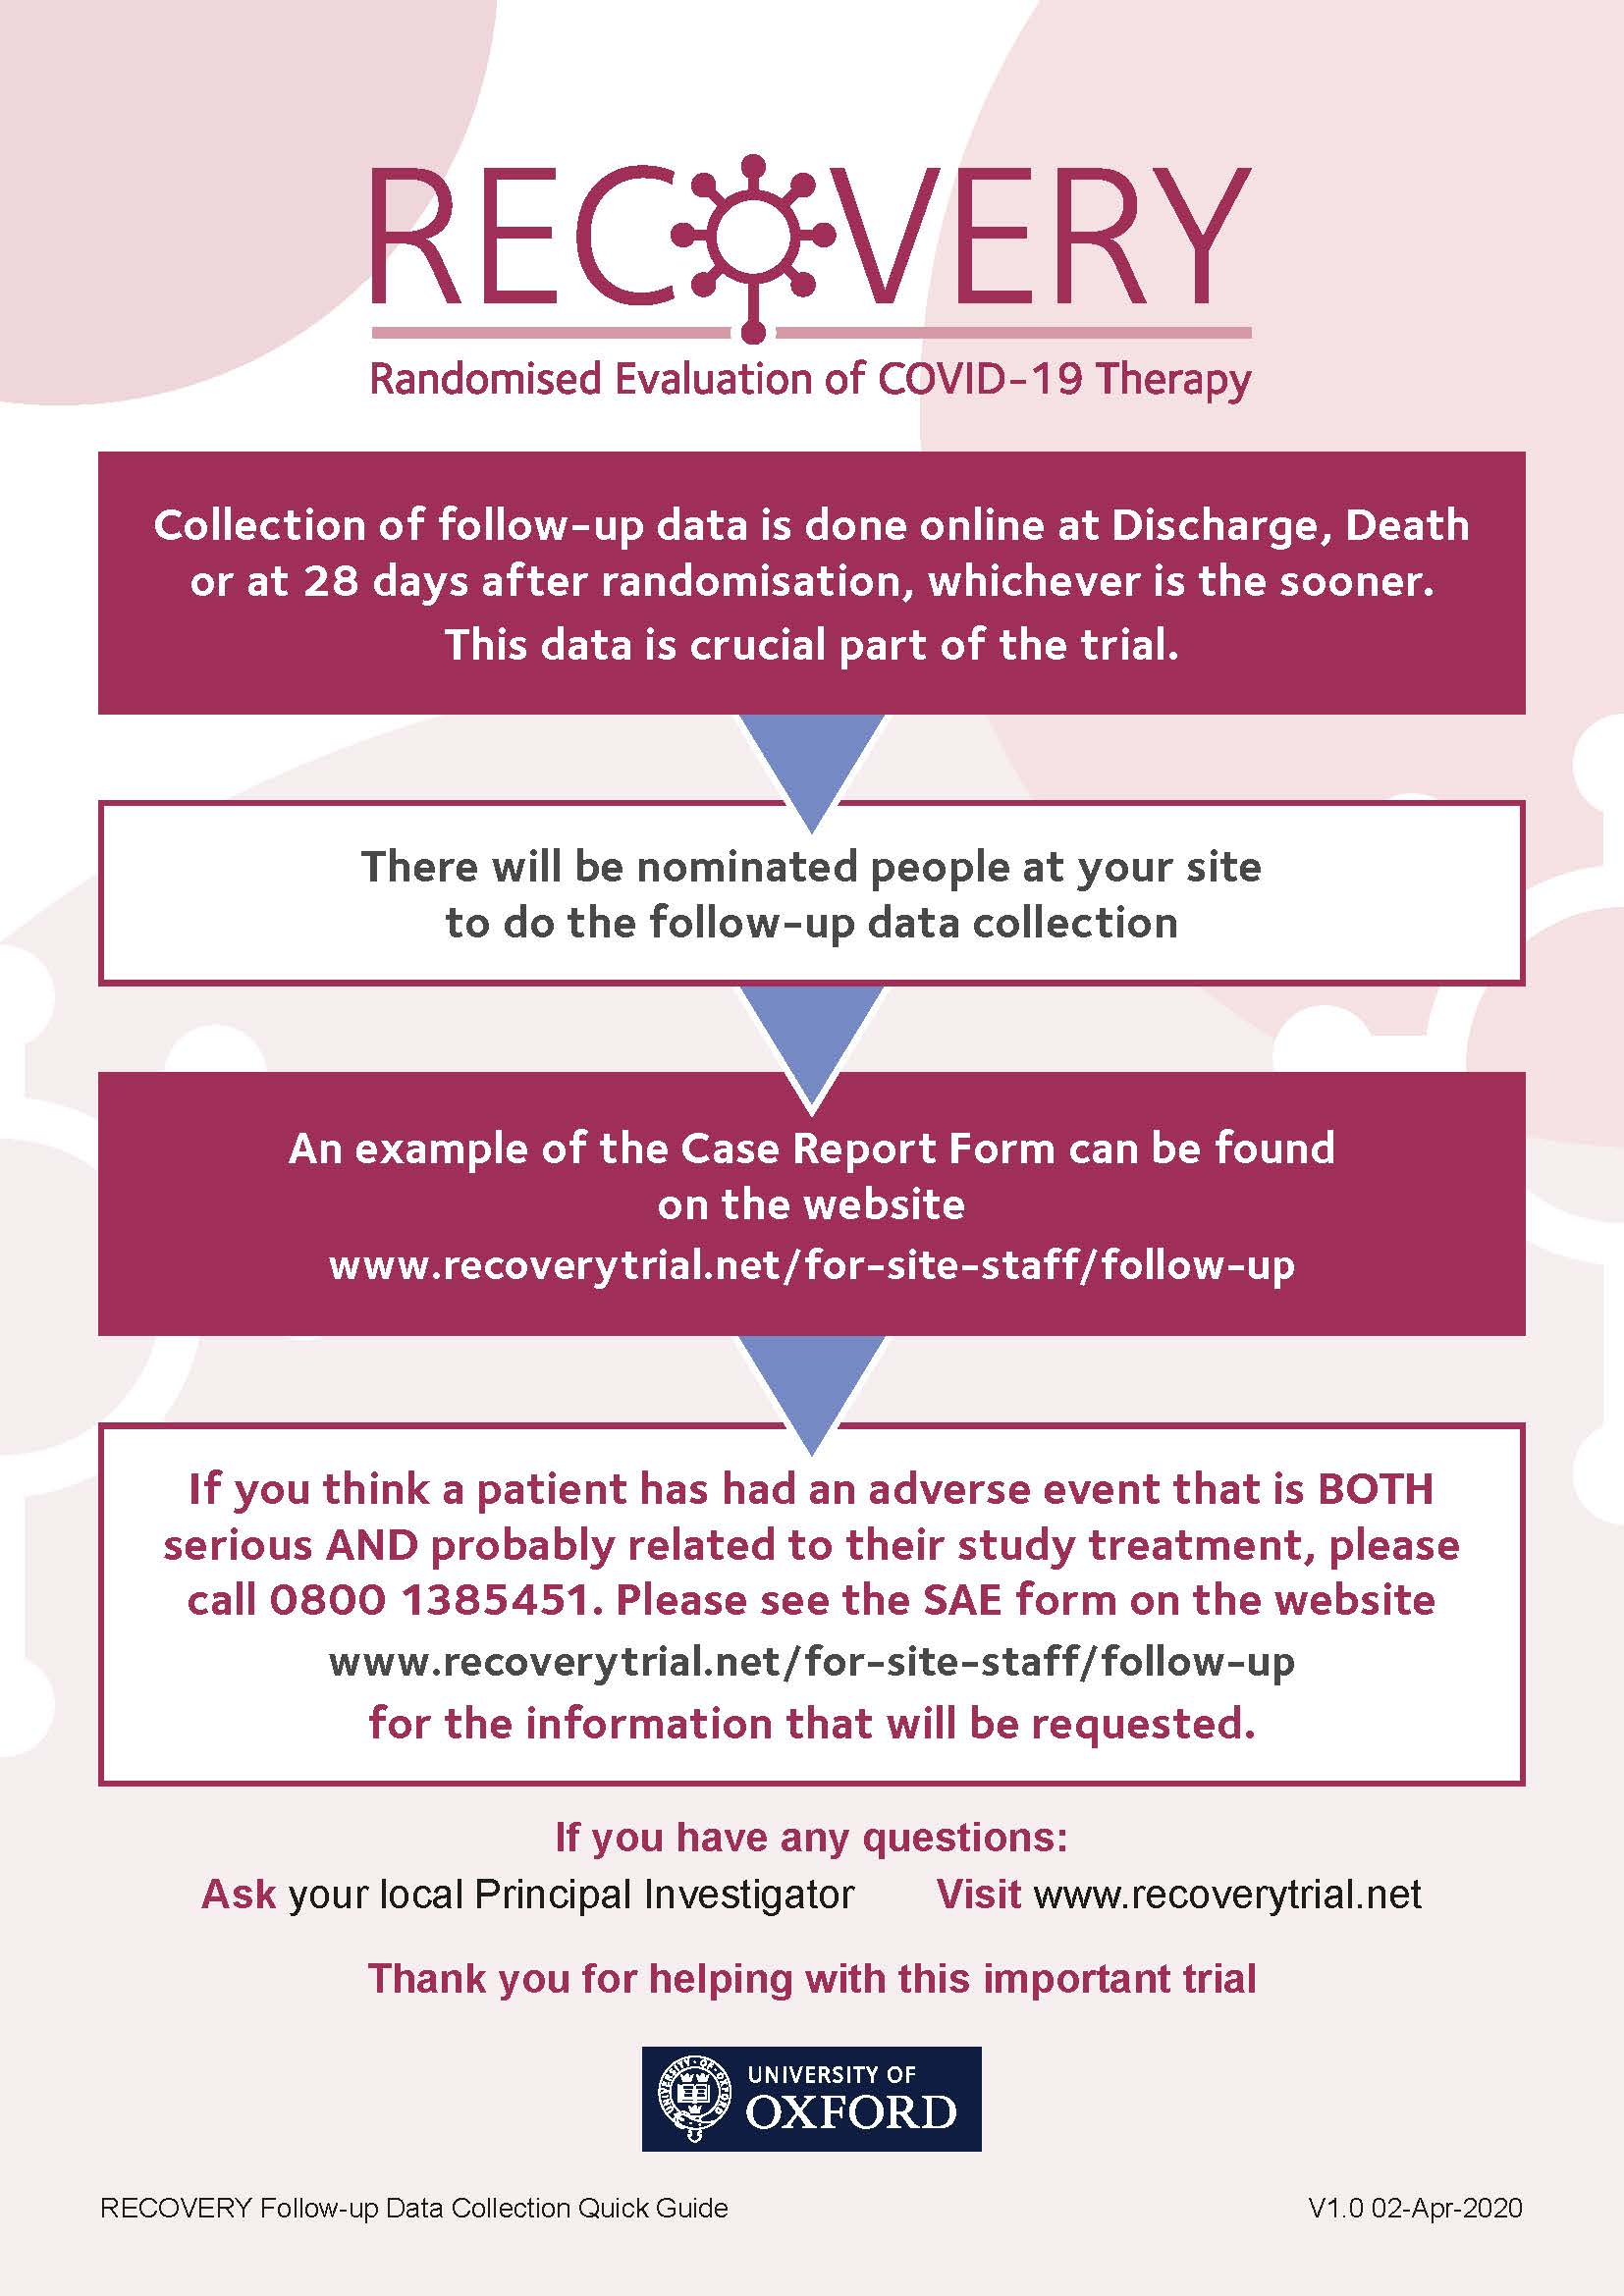 RECOVERY - COVID19 Follow-up Data Collection Guide v1.0 April FINAL.jpg